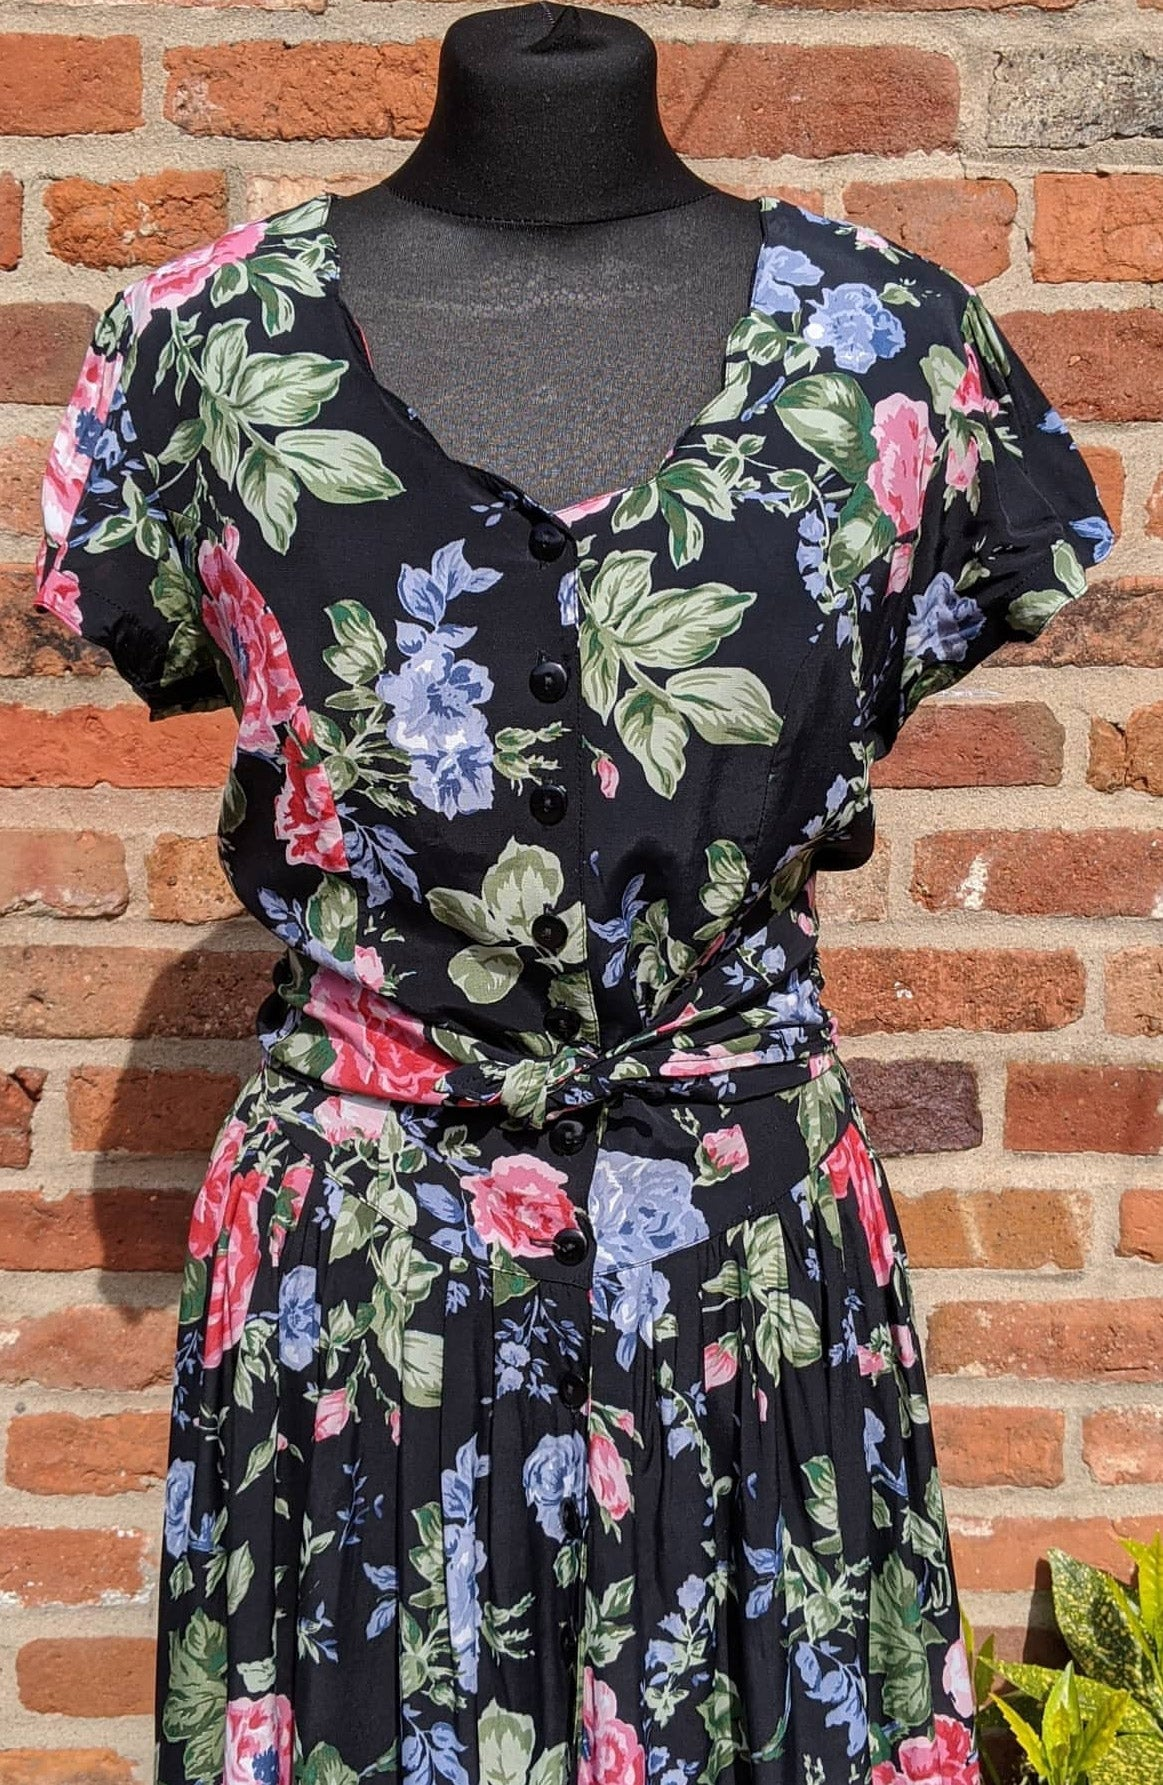 Retro dark floral 90s dress approx size 10/12